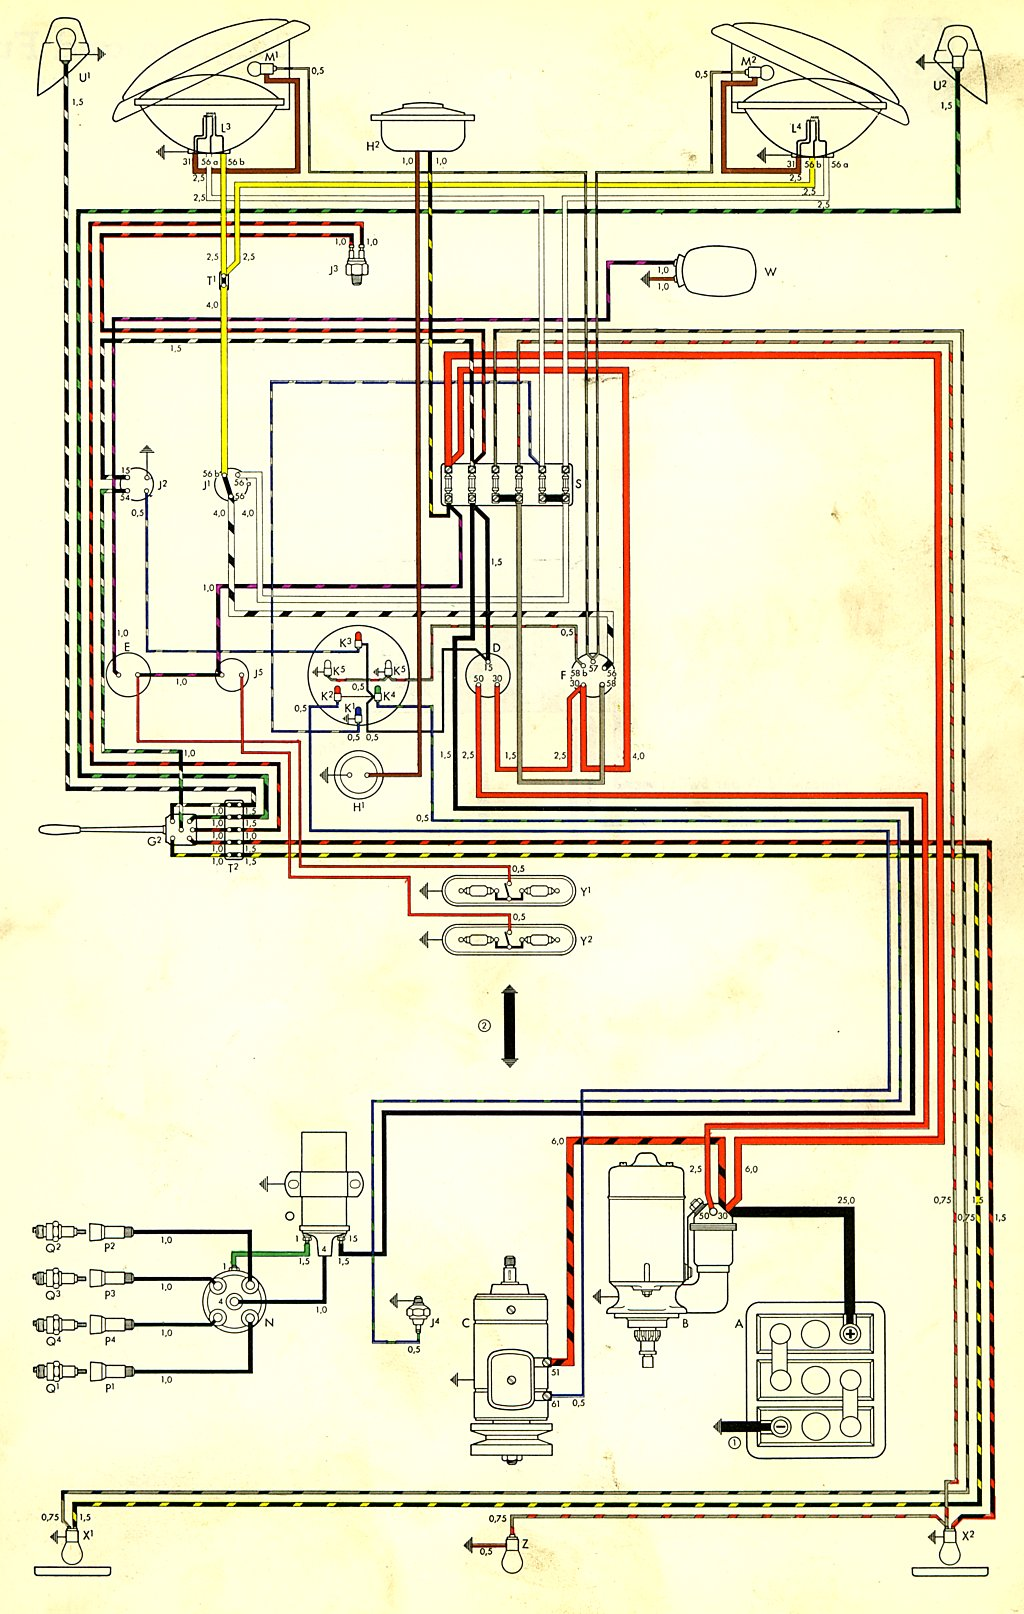 thesamba com type 2 wiring diagrams cub cadet exploded parts diagram 68 vw wiring diagram #2